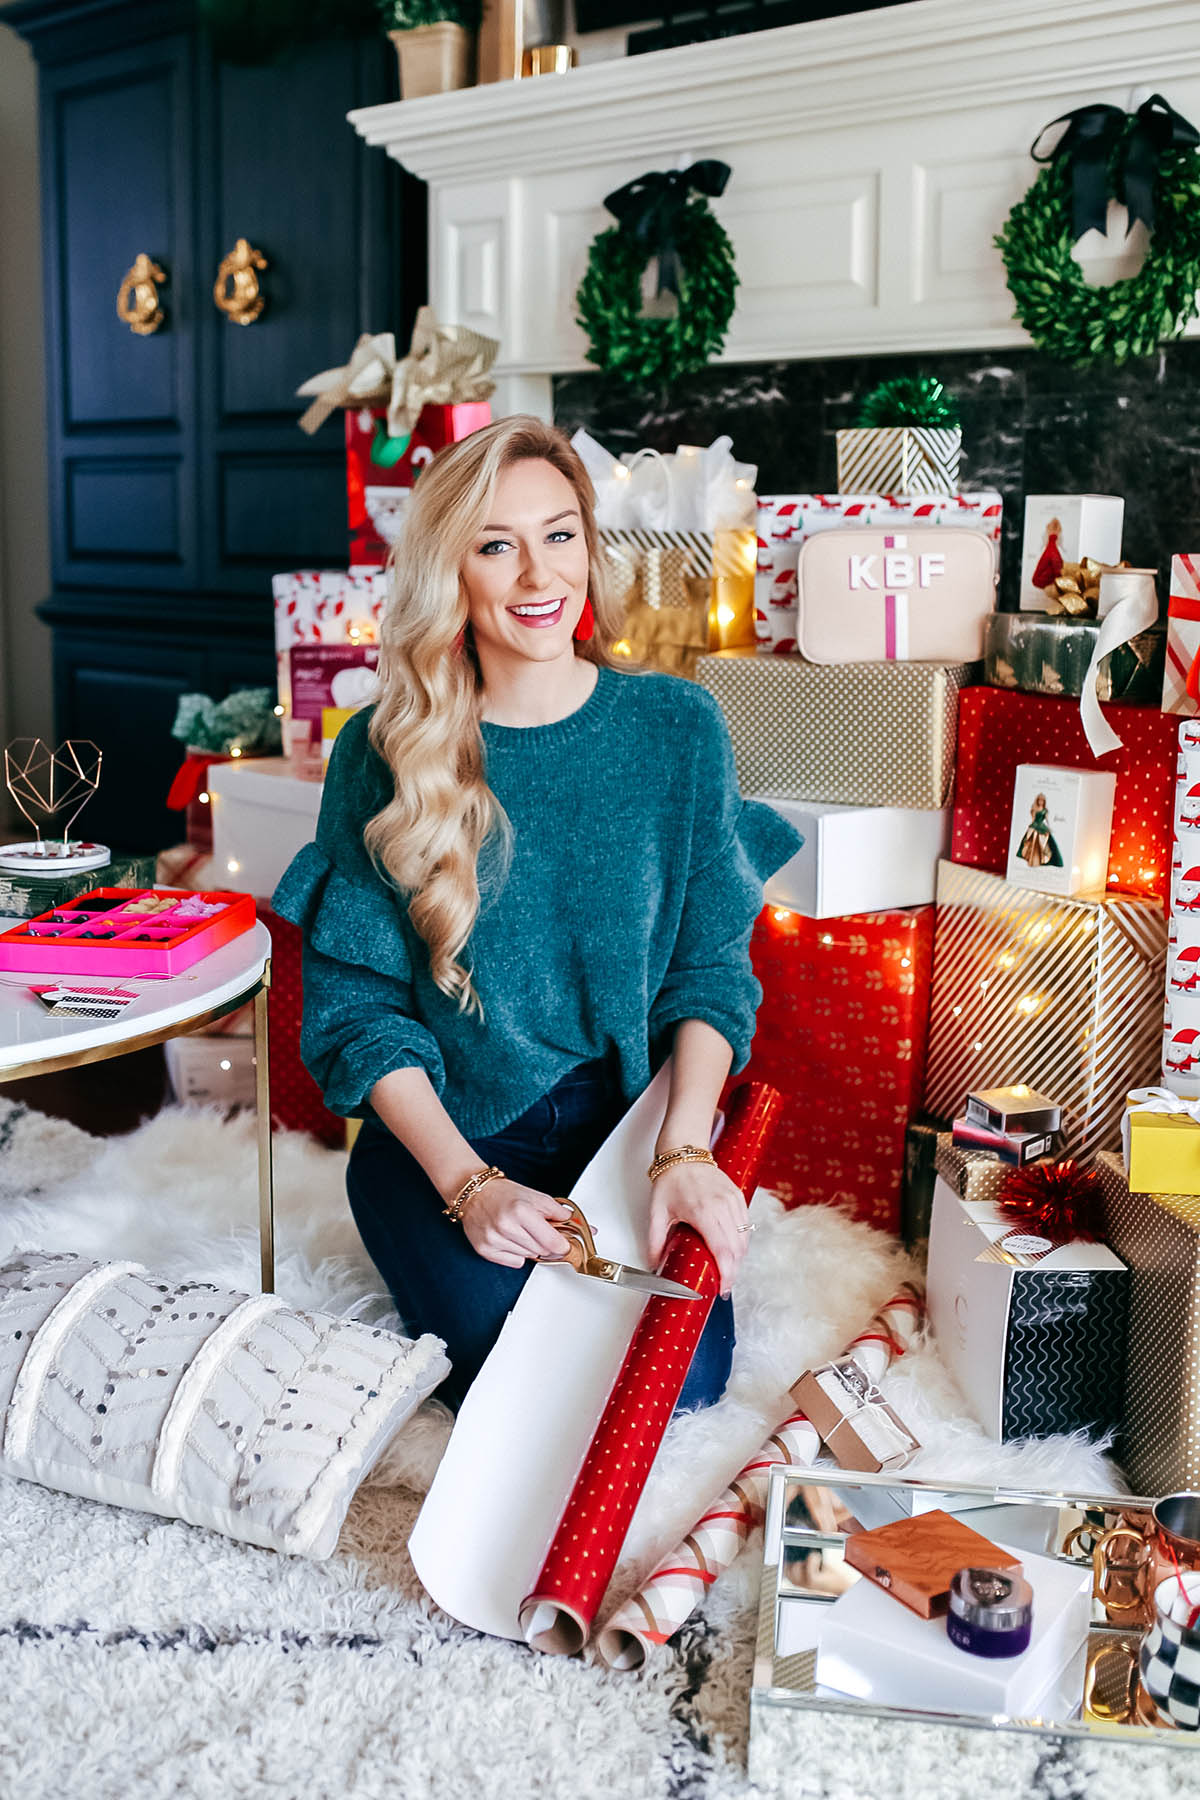 Sharing My Favorite Family Holiday Traditions | Hallmark Wrapping Paper | Holiday Decorating Ideas | Holiday Wrapping and Gift Ideas